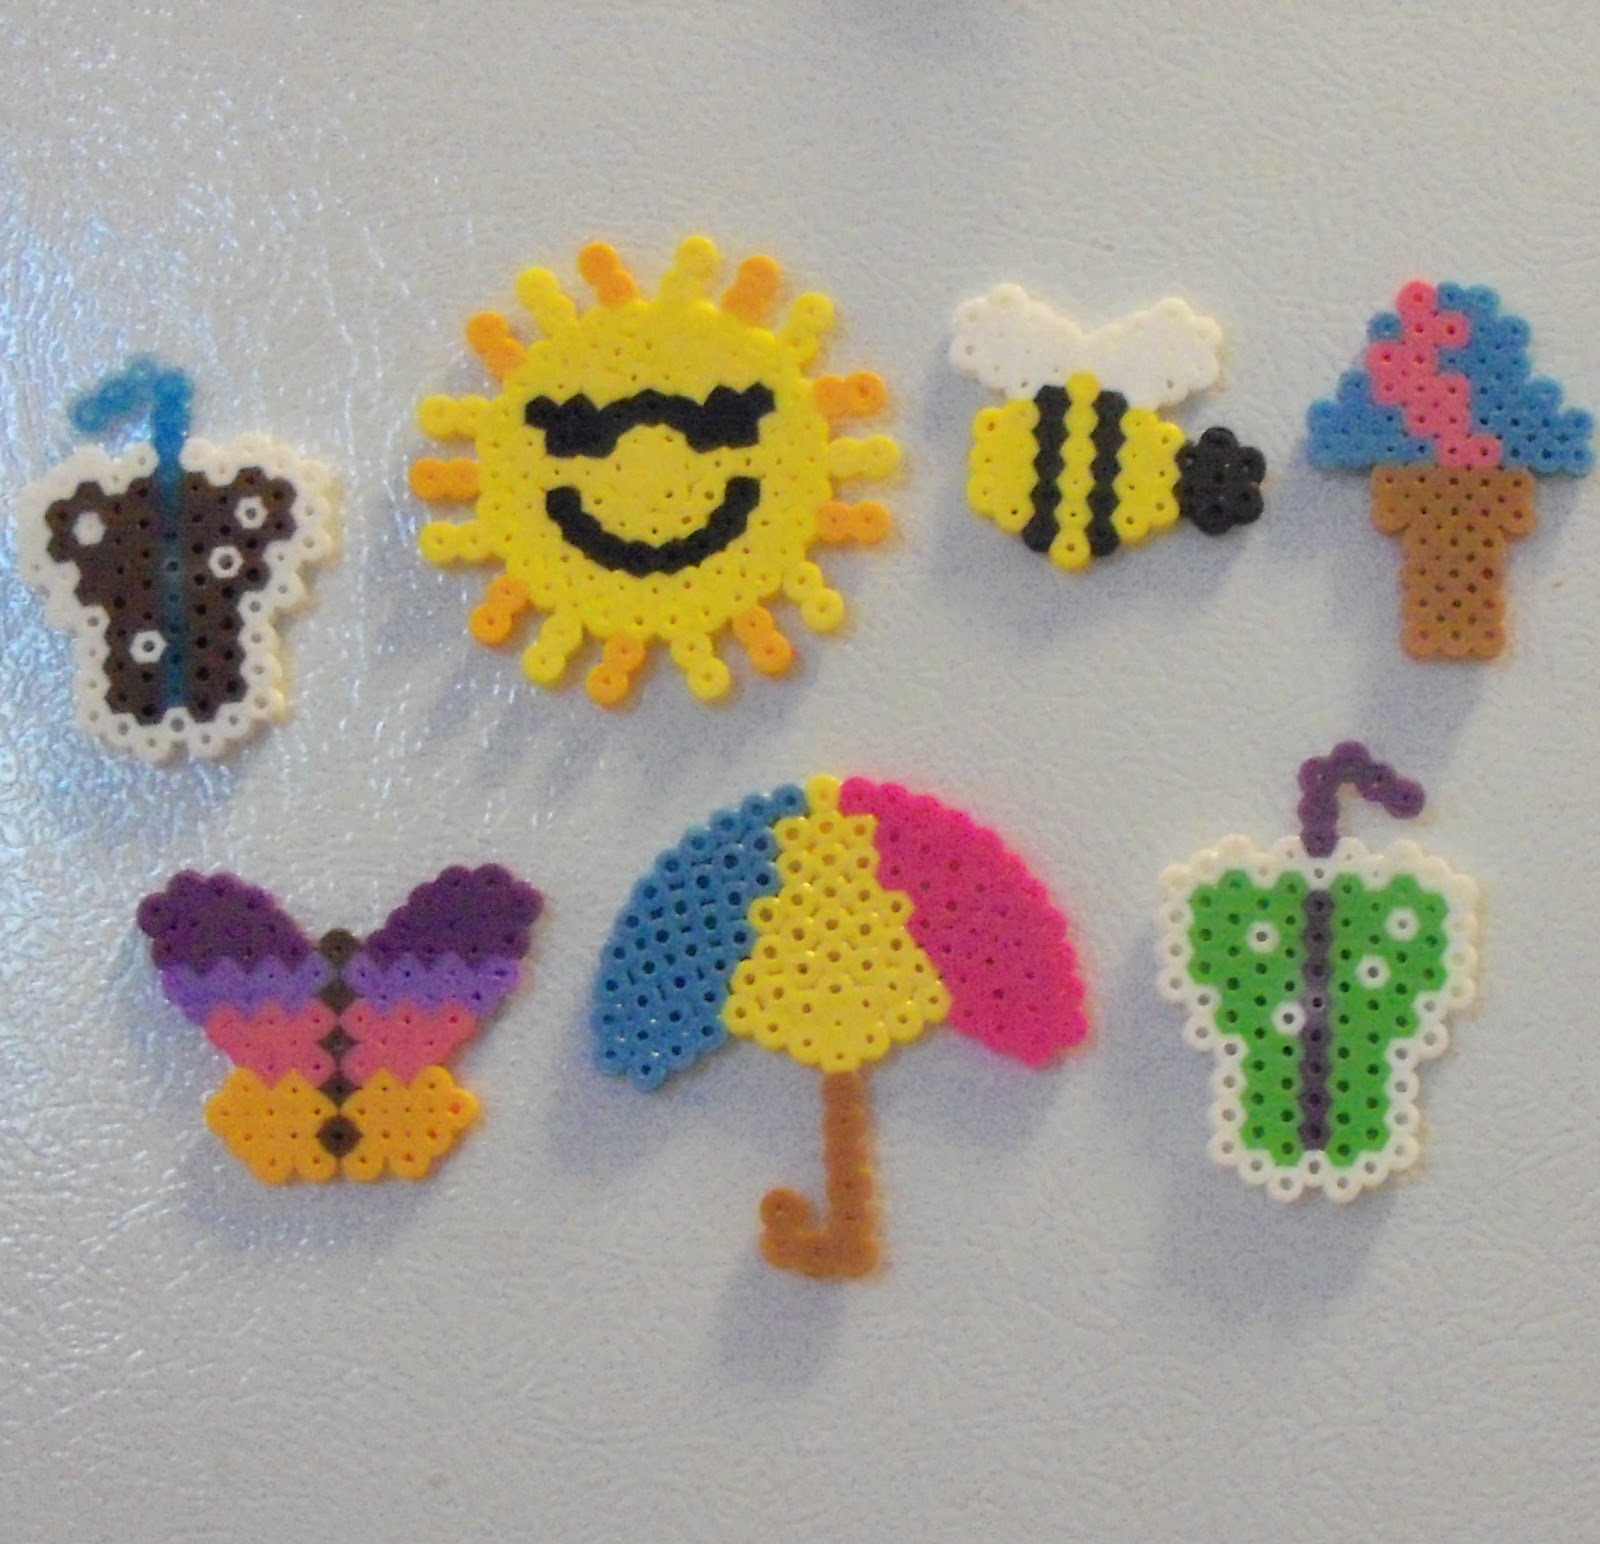 Amber\'s Craft a Week Blog: Fuse Bead Spring Magnets